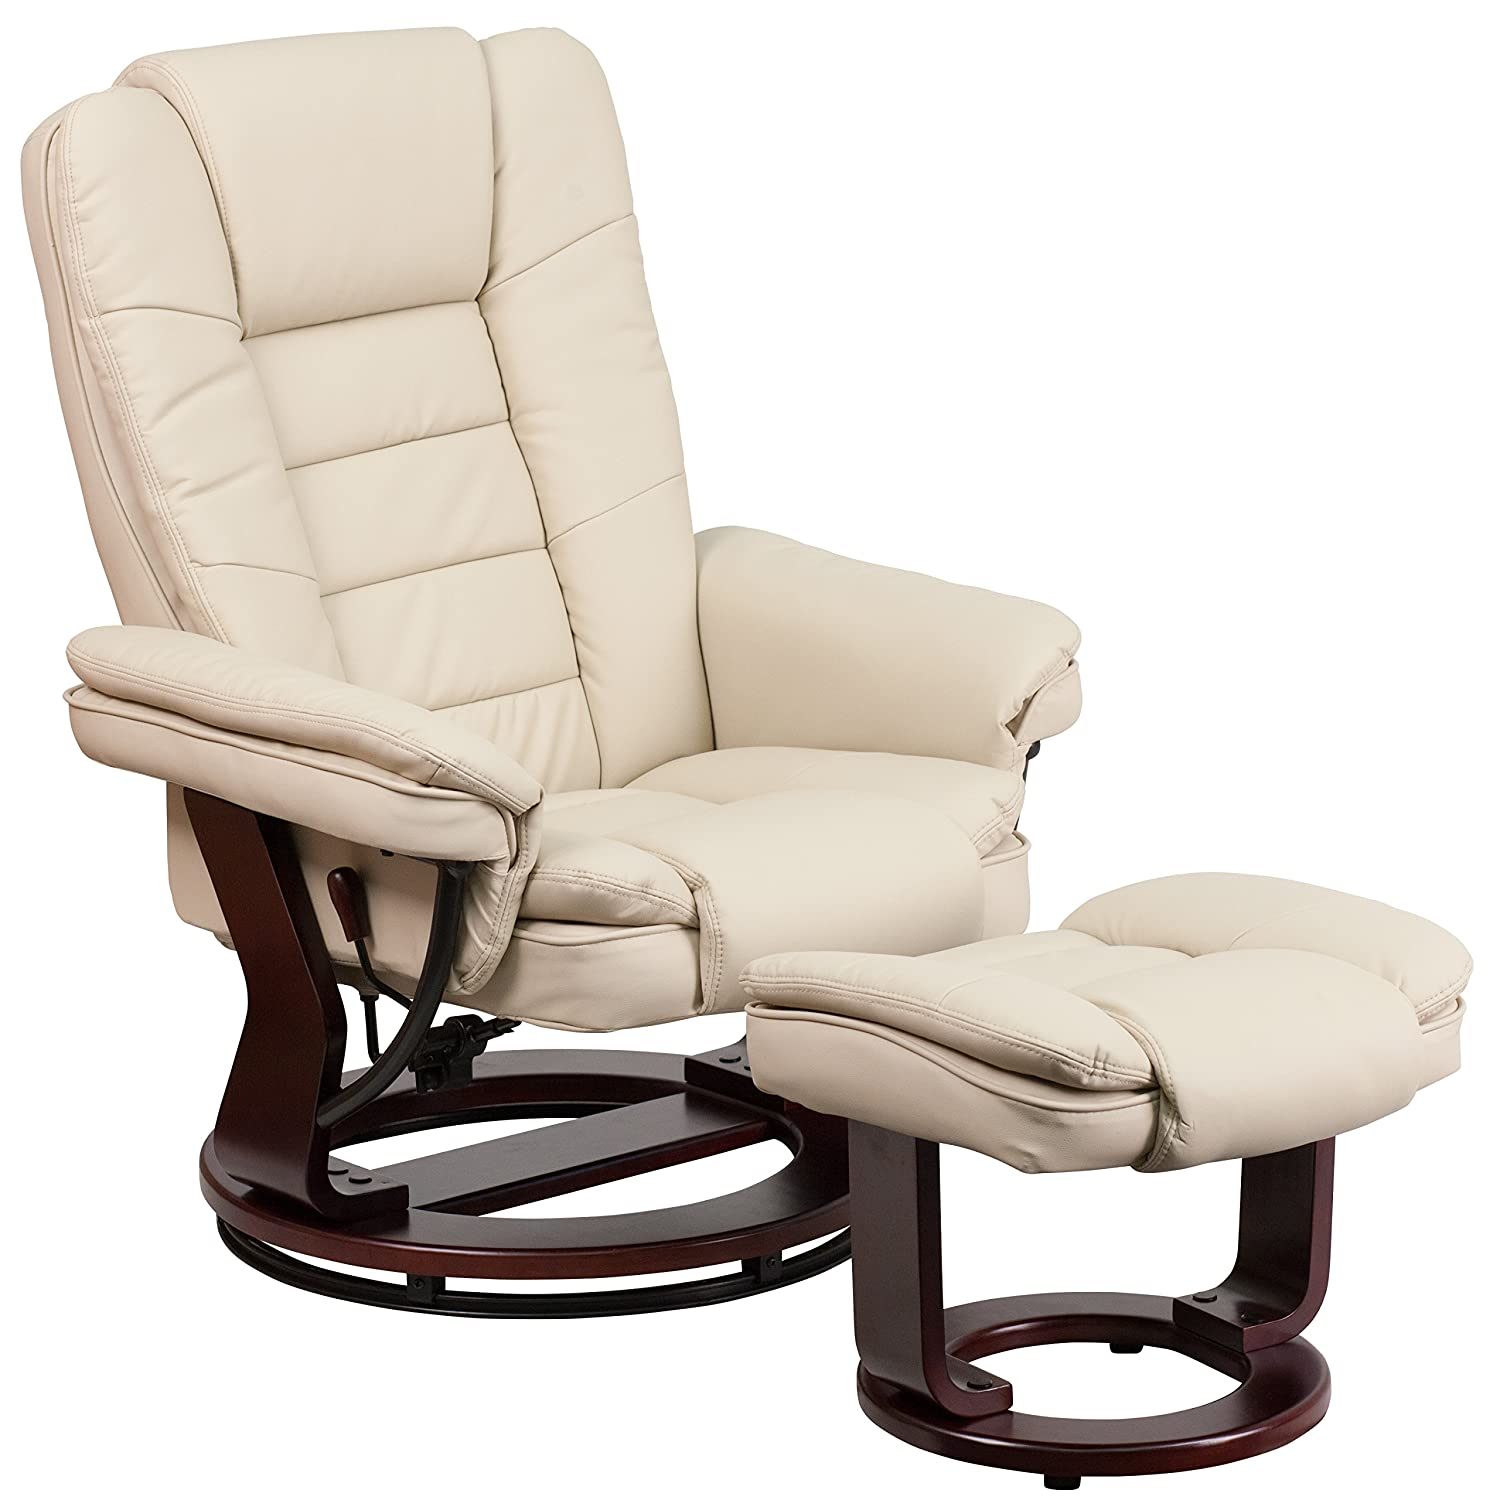 contemporary recliners, contemporary recliner, best contemporary recliners, best contemporary recliner, contermporary recliners review, contemporary recliner review, contemporary recliners reviews, contemporary recliner reviews